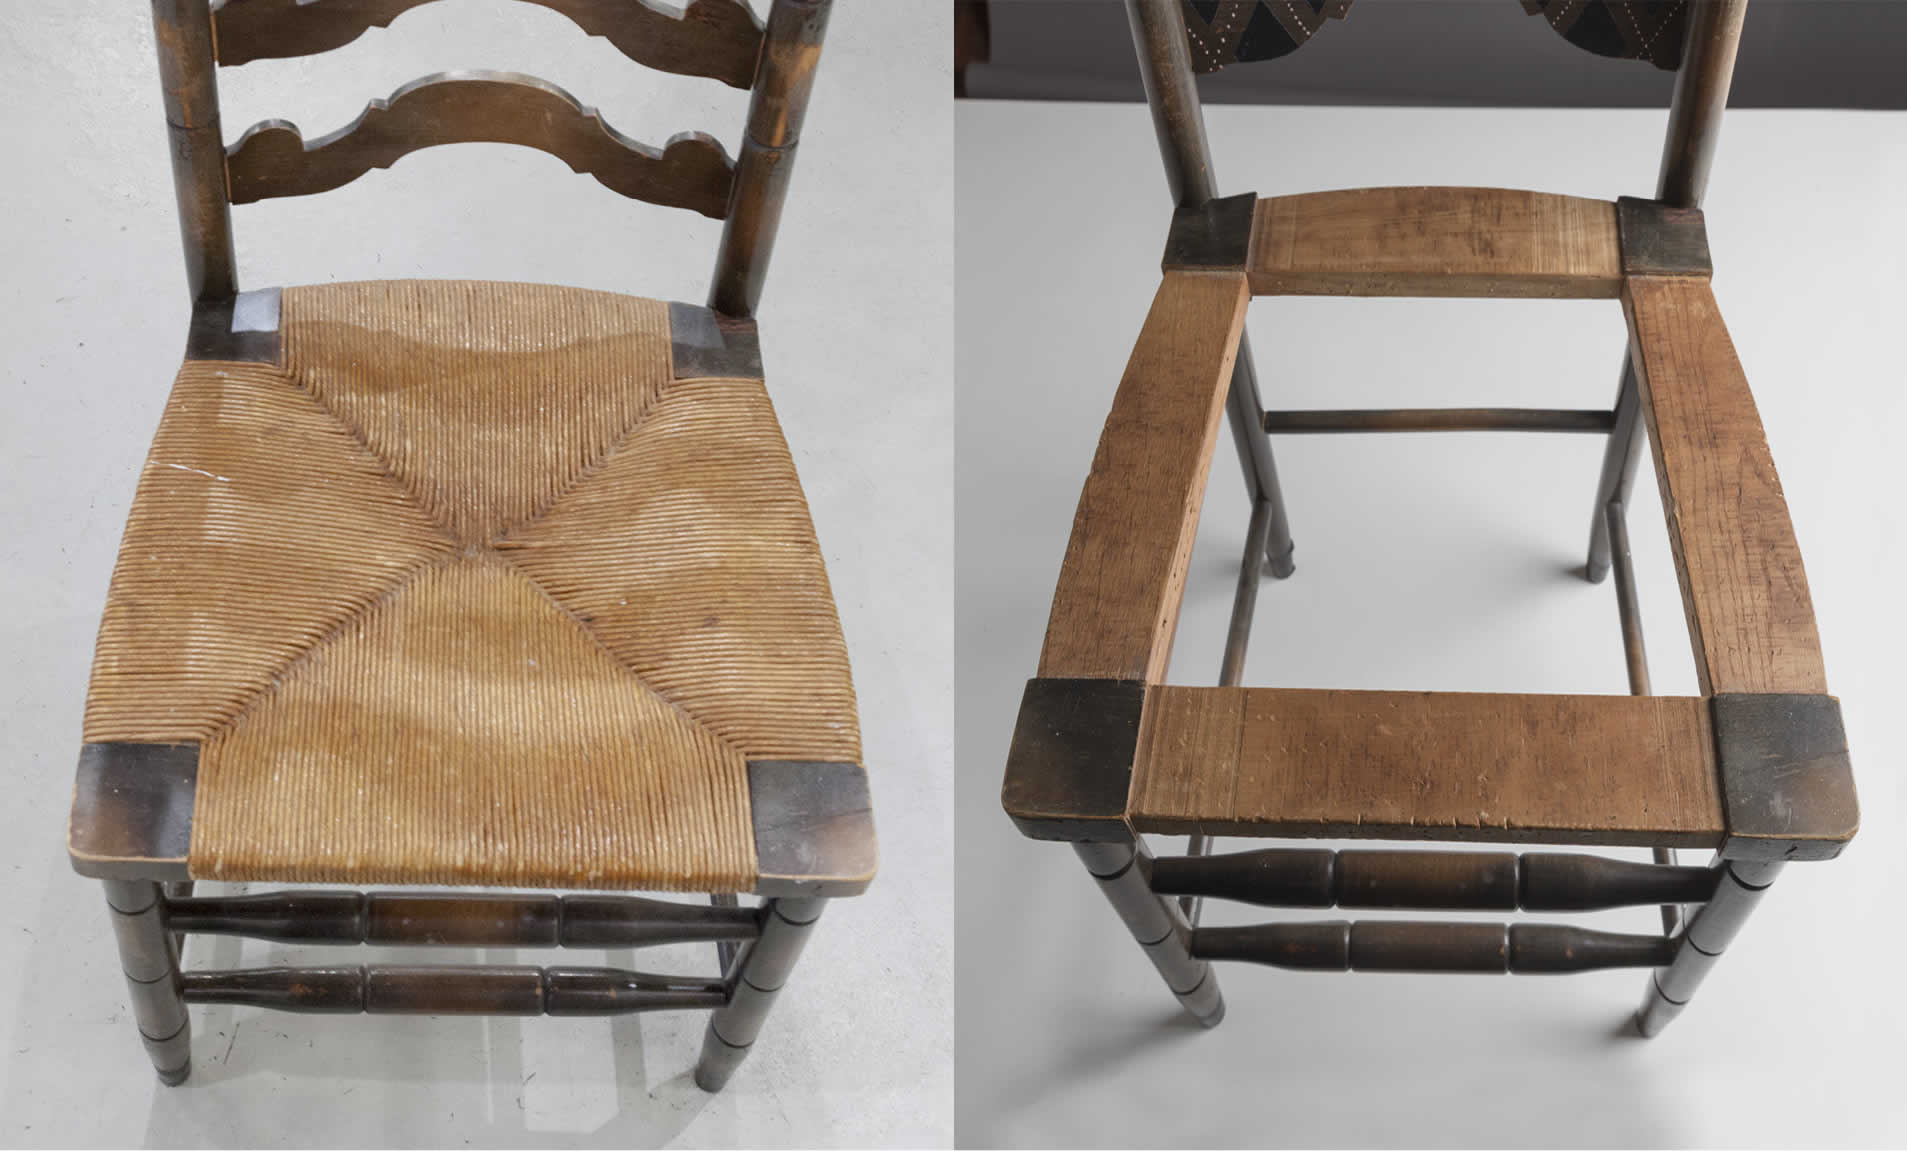 how to cane a chair contemporary living room chairs upcycle seat in 9 easy steps arrow fastener recane